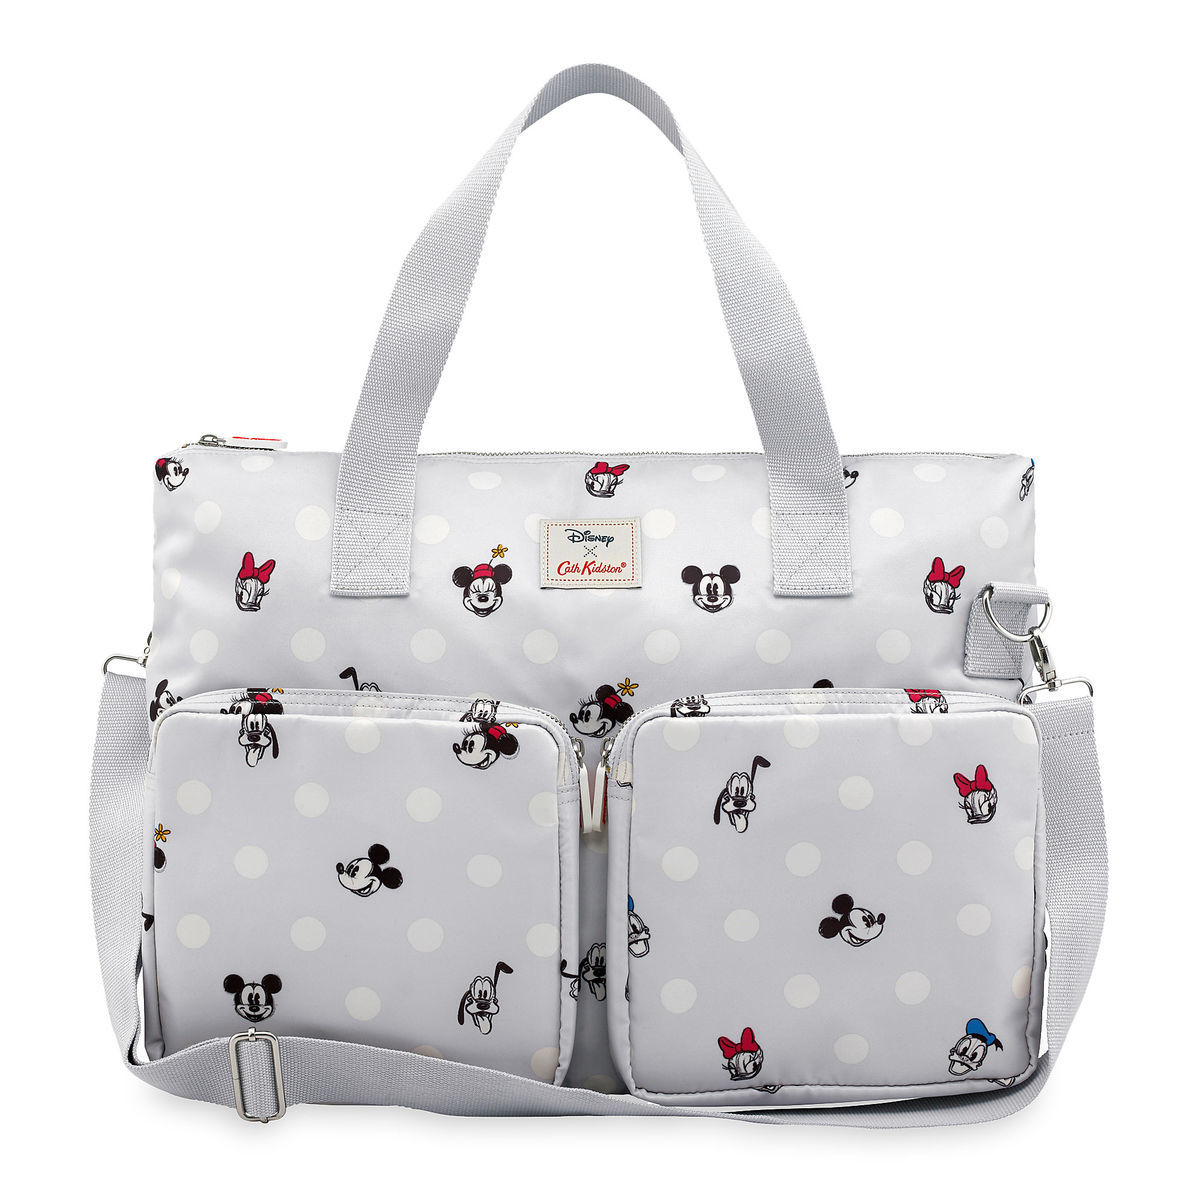 Product Image Of Mickey Mouse And Friends Baby Changing Bag By Cath Kidston 1